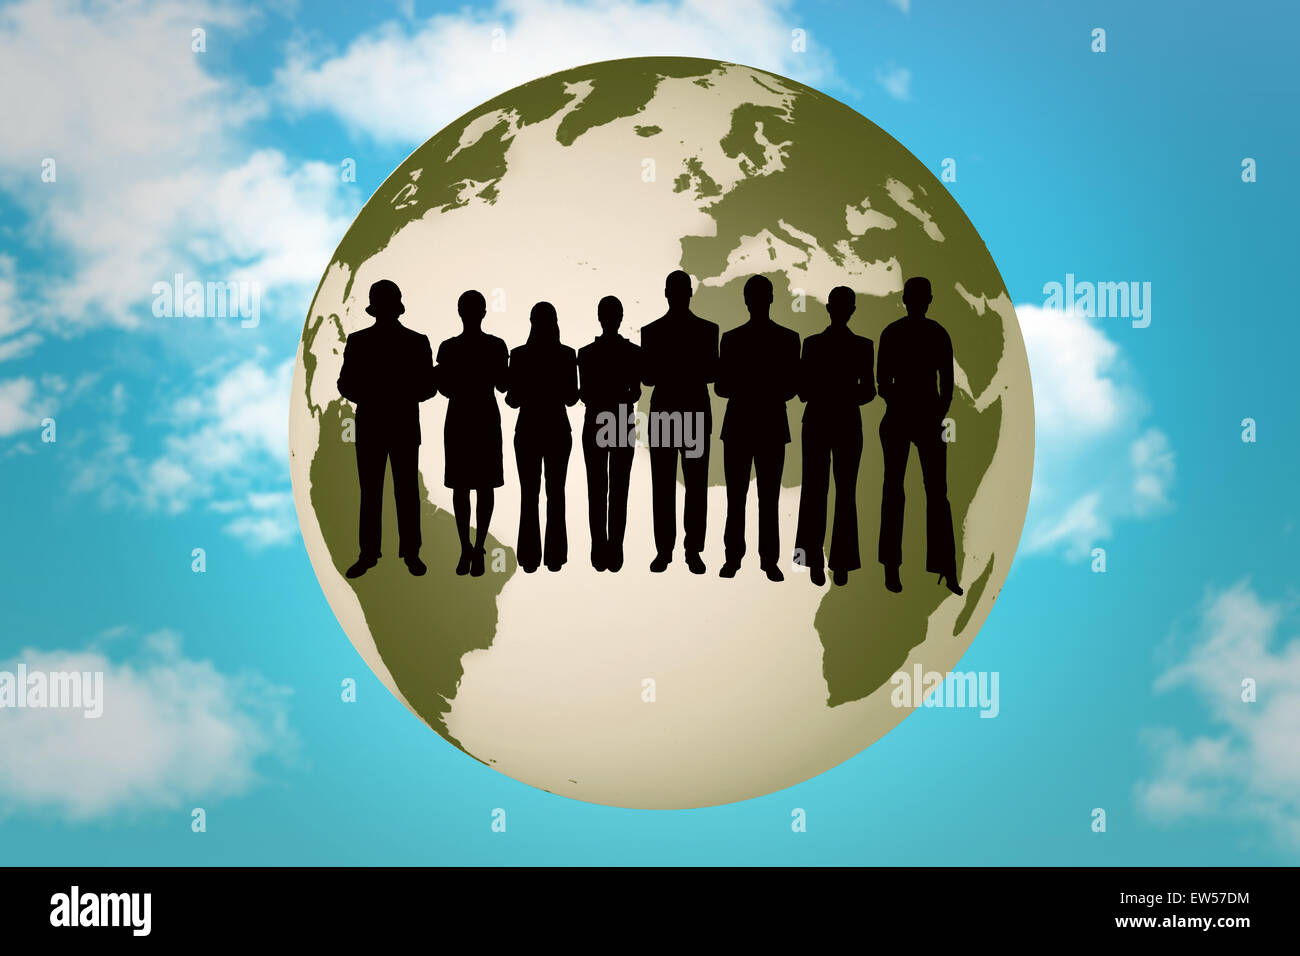 Composite image of silhouette of business people in a row - Stock Image